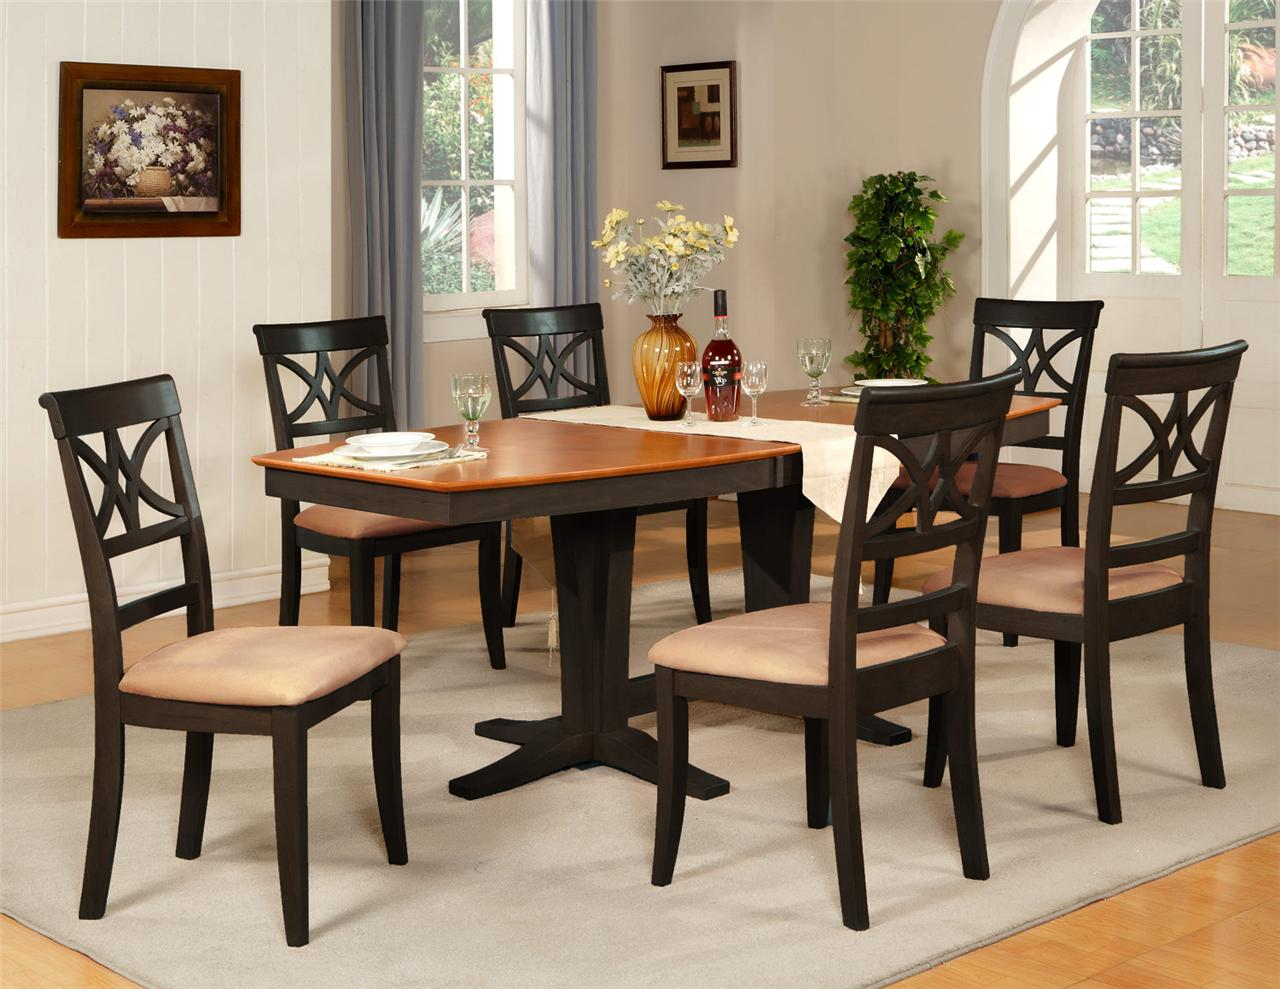 dining room sets that seat 8 | 9PC DINING ROOM SET TABLE AND 8 UPHOLSTERED SEAT CHAIRS IN ...